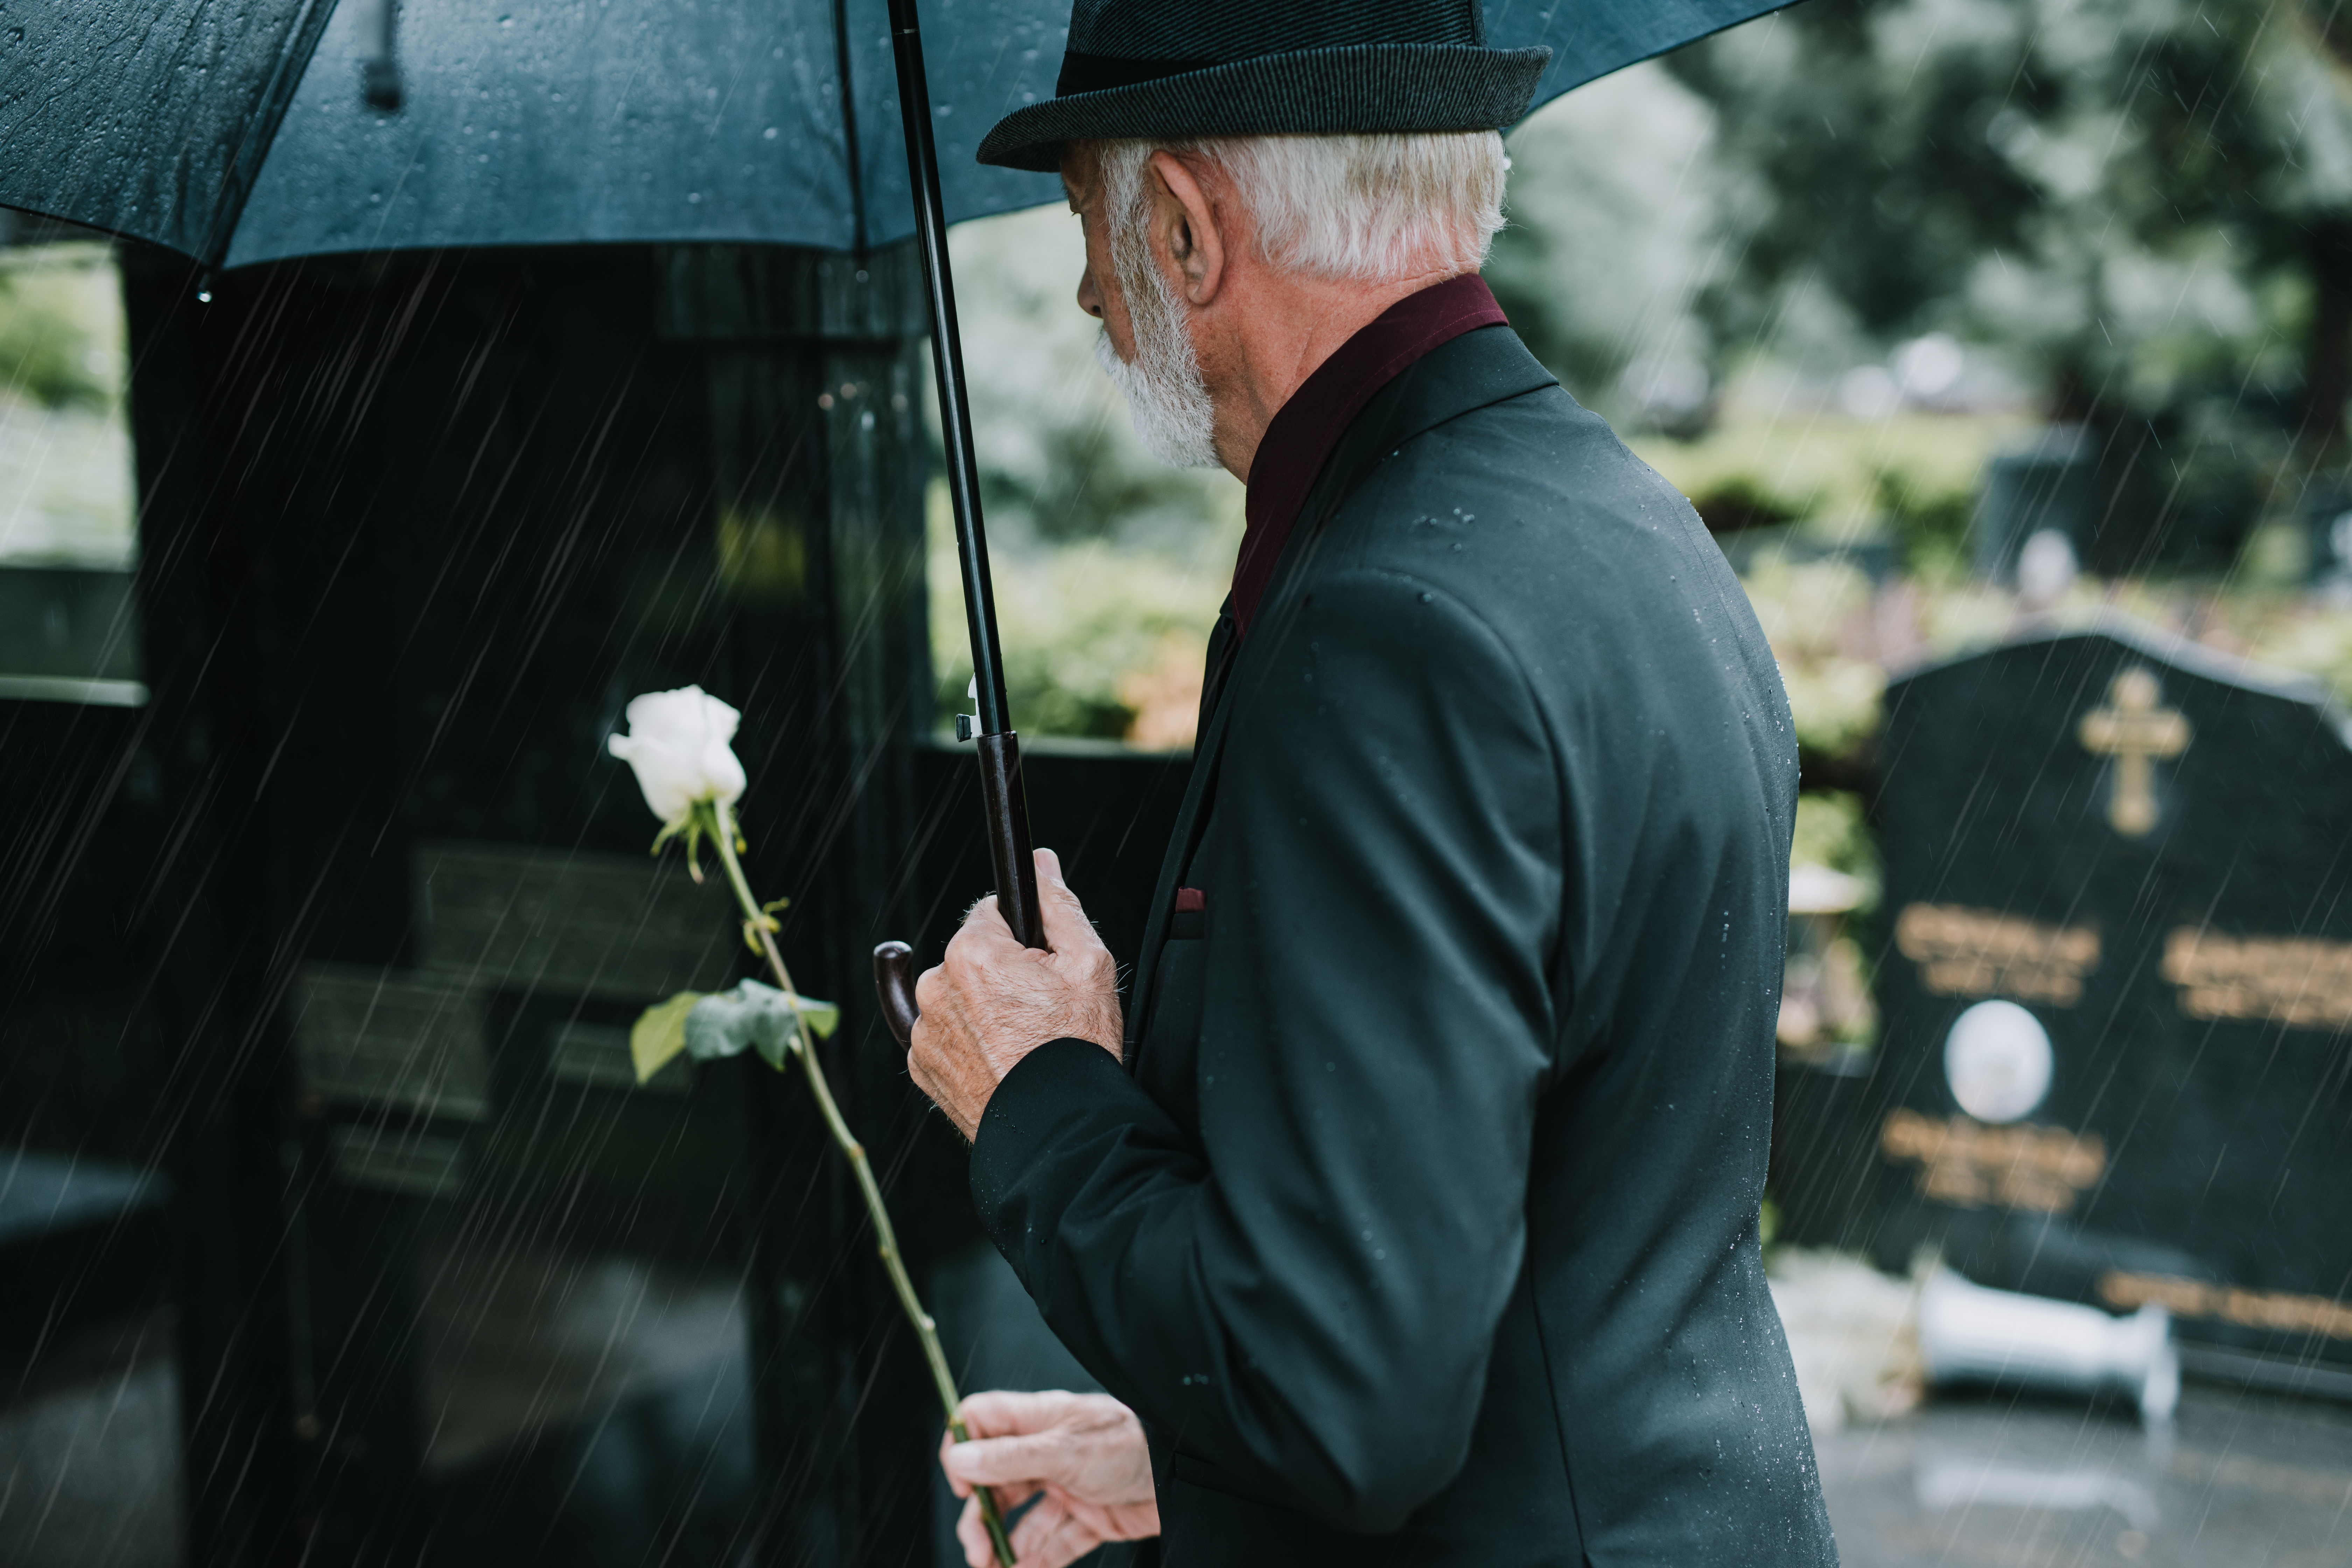 Man with white hair and beard, wearing black suit and hat, holding black umbrella and white flower, standing near gravestones.